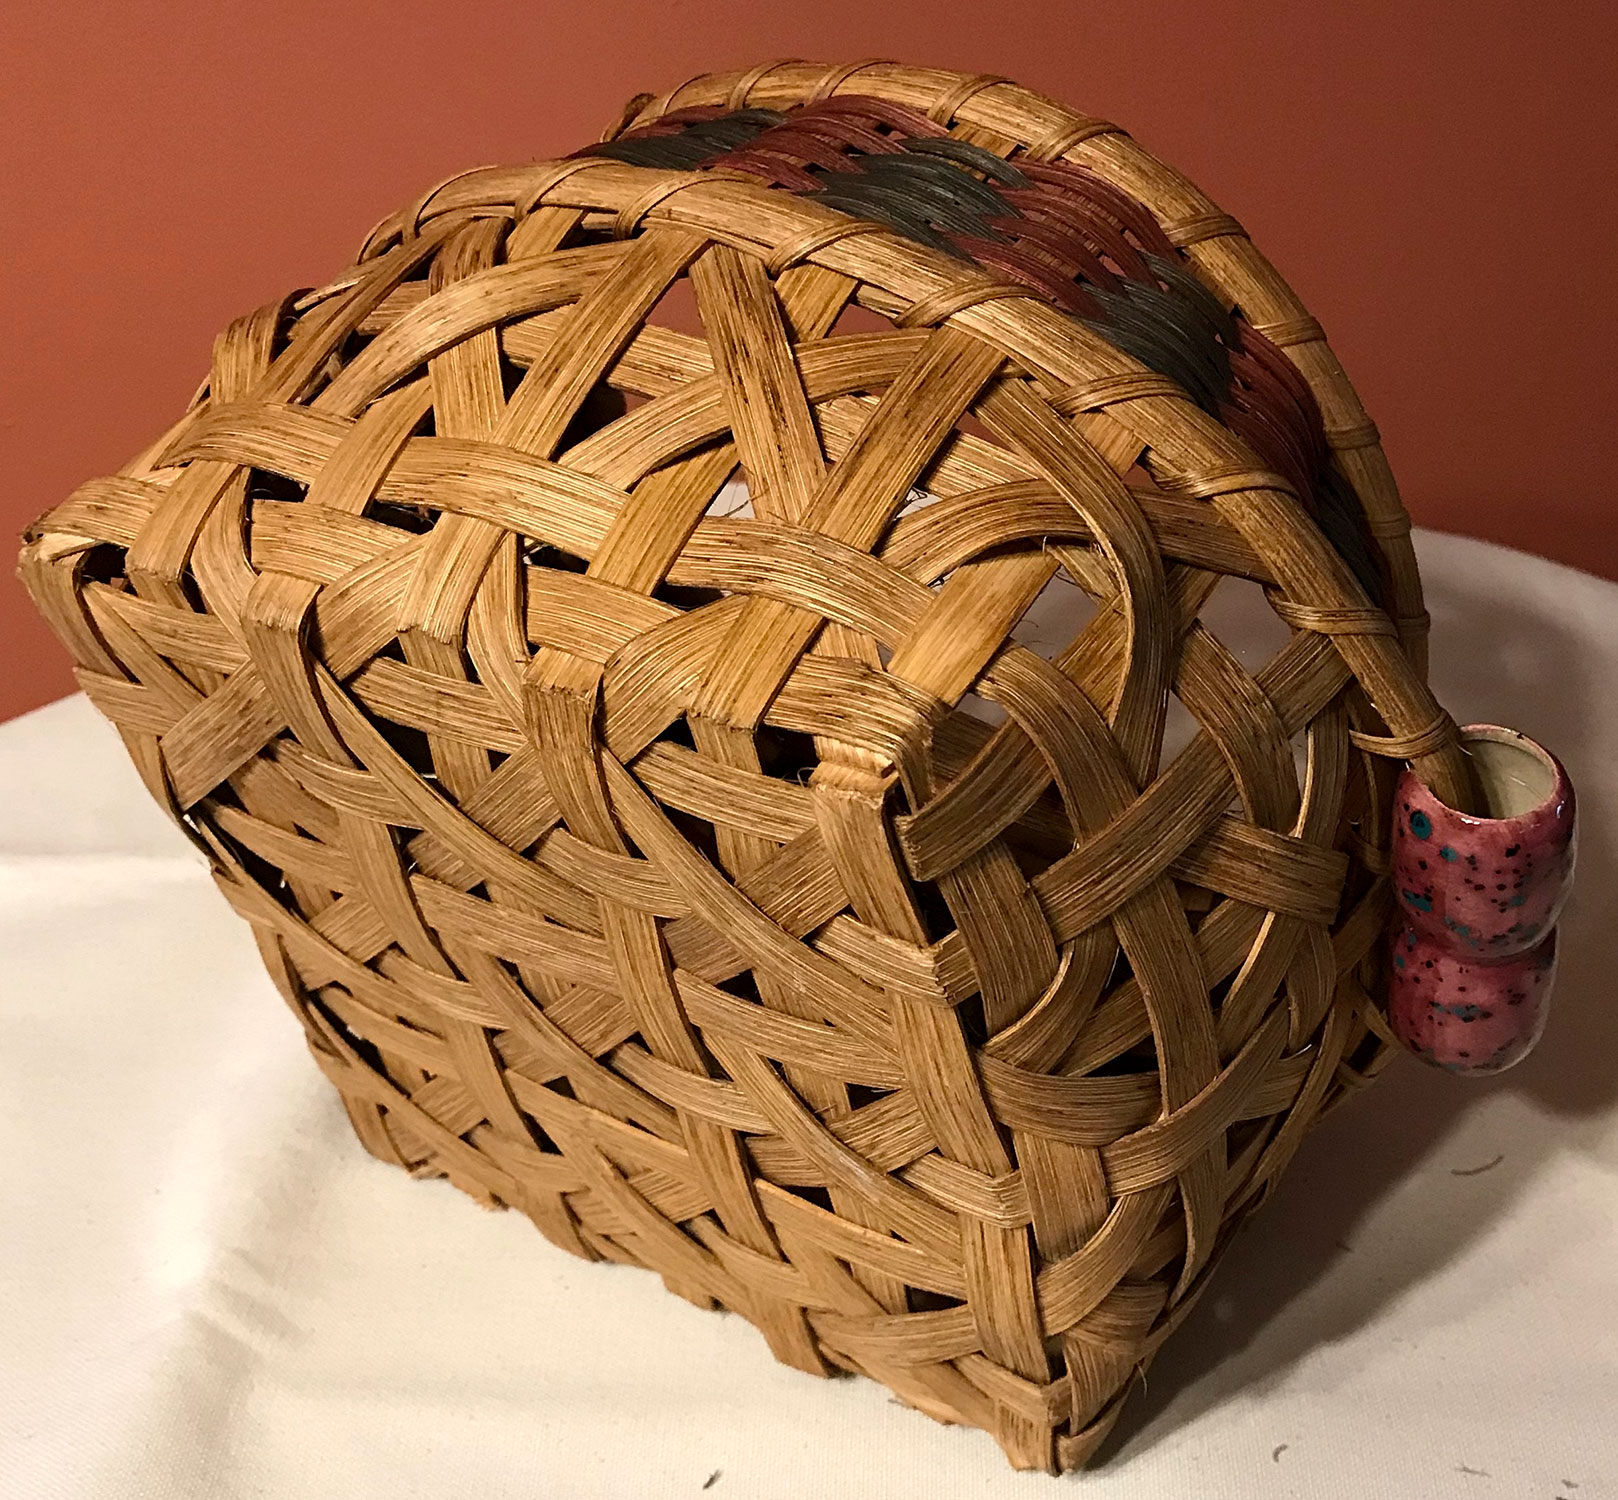 Bottom of an Intricate Basket with Ceramic Handles